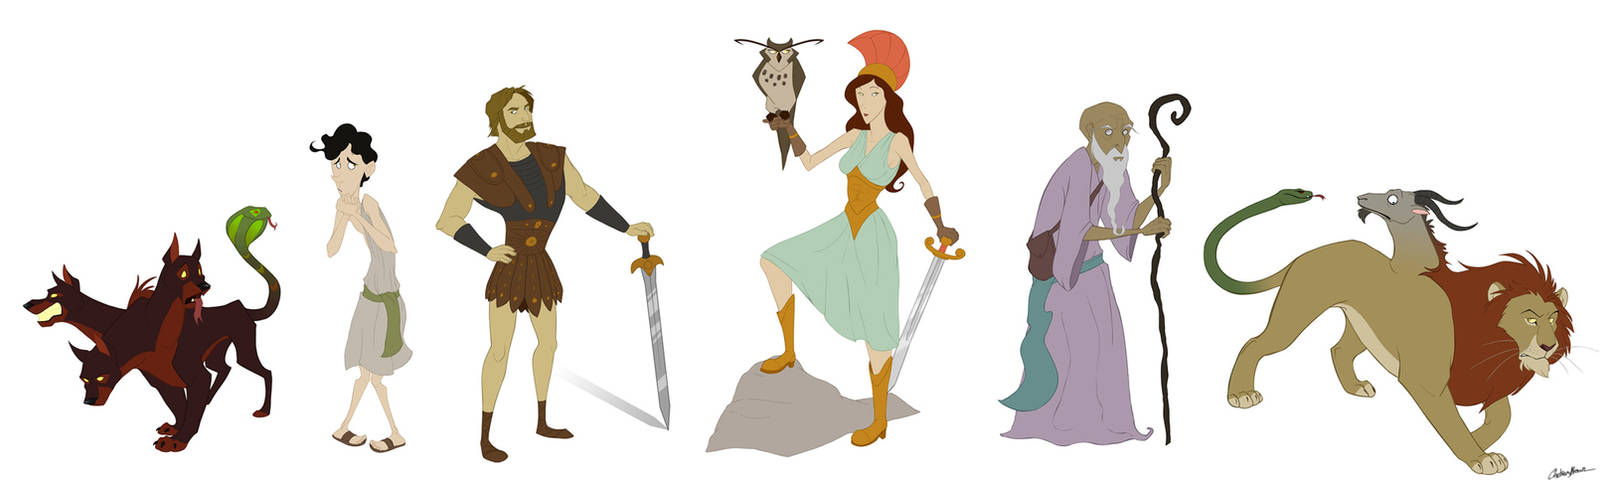 Character Design - Greek Myths